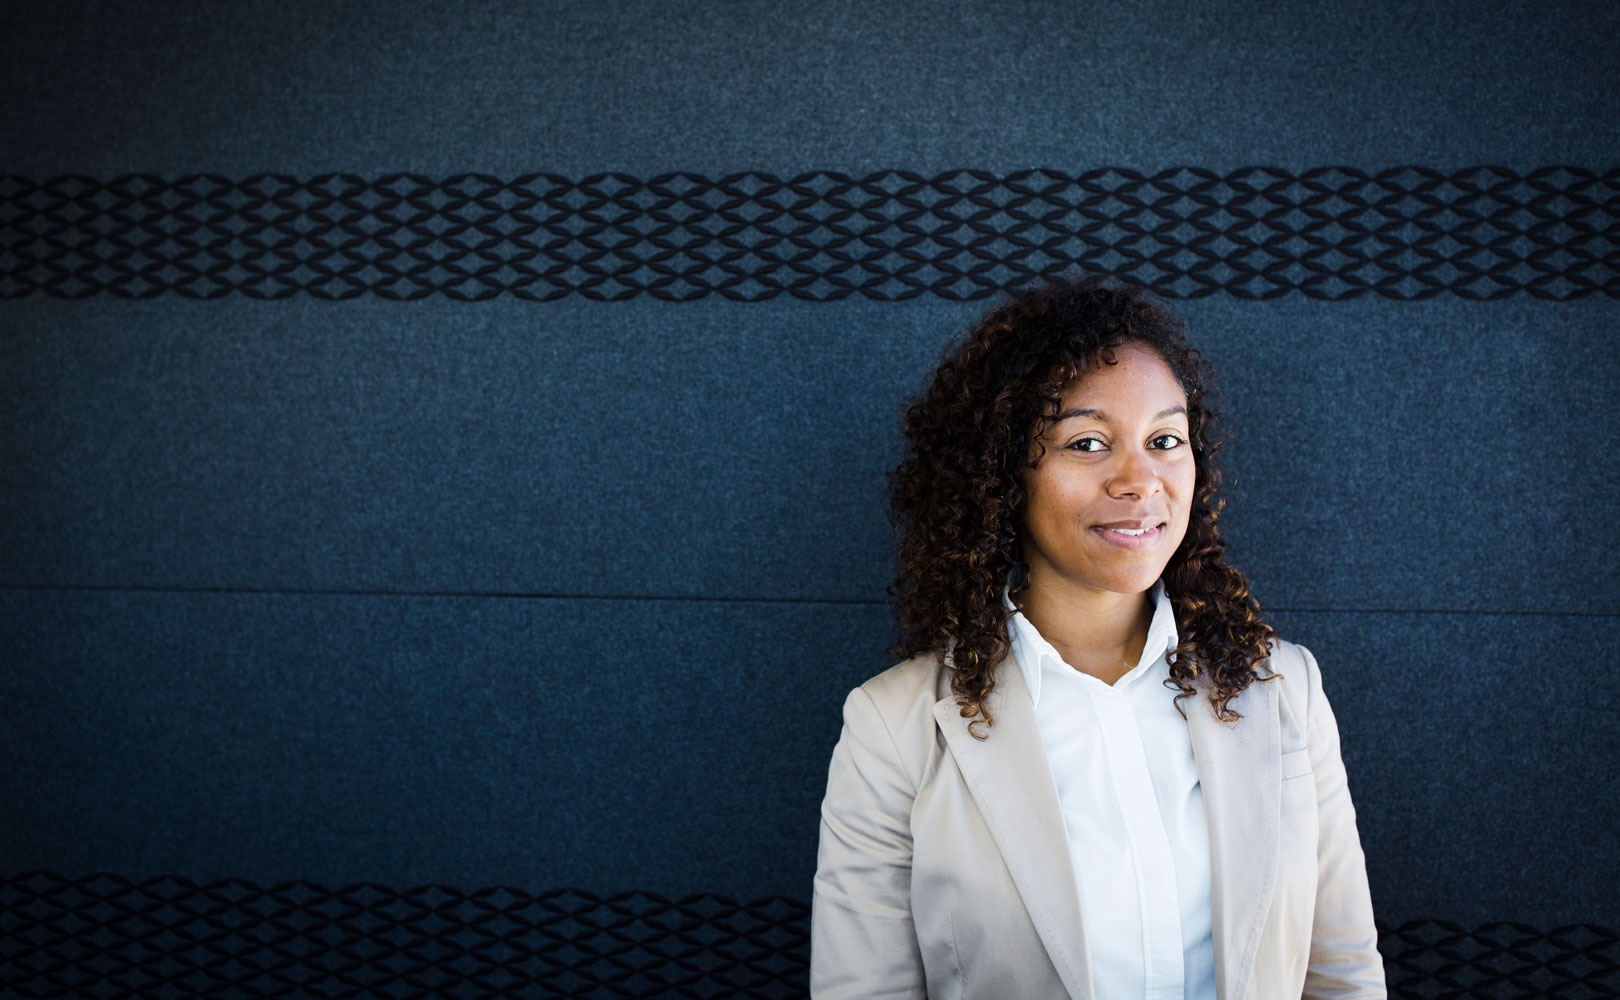 3 Easy Ways Women Can Demonstrate Their Authority at Work